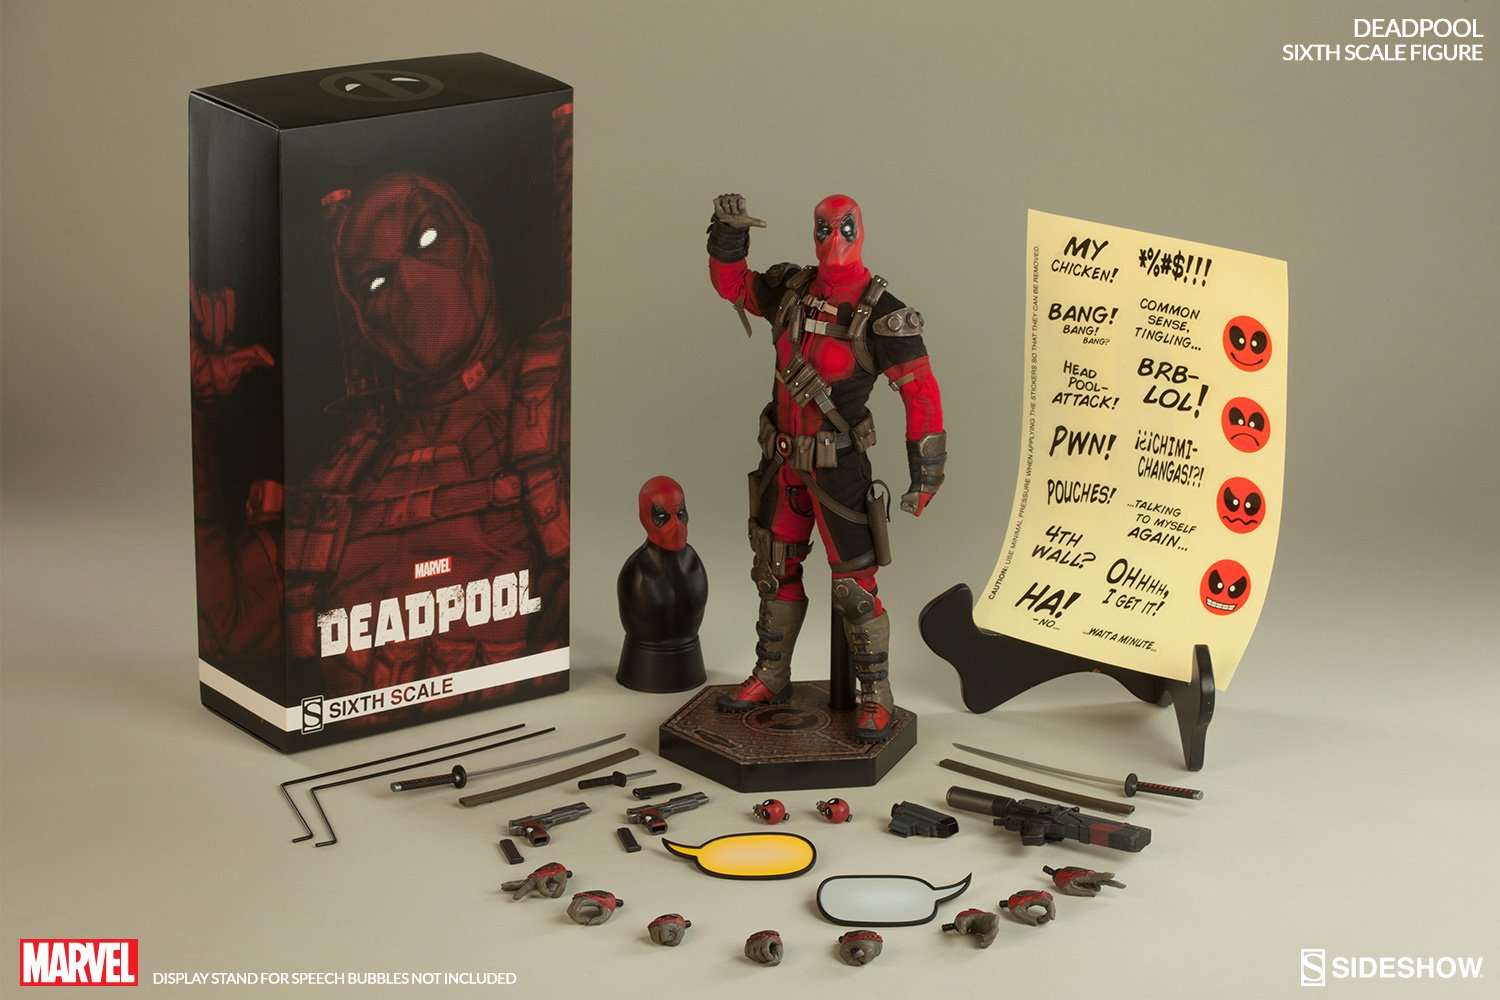 deadpool-sixth-scale-marvel-100178-12.jpg